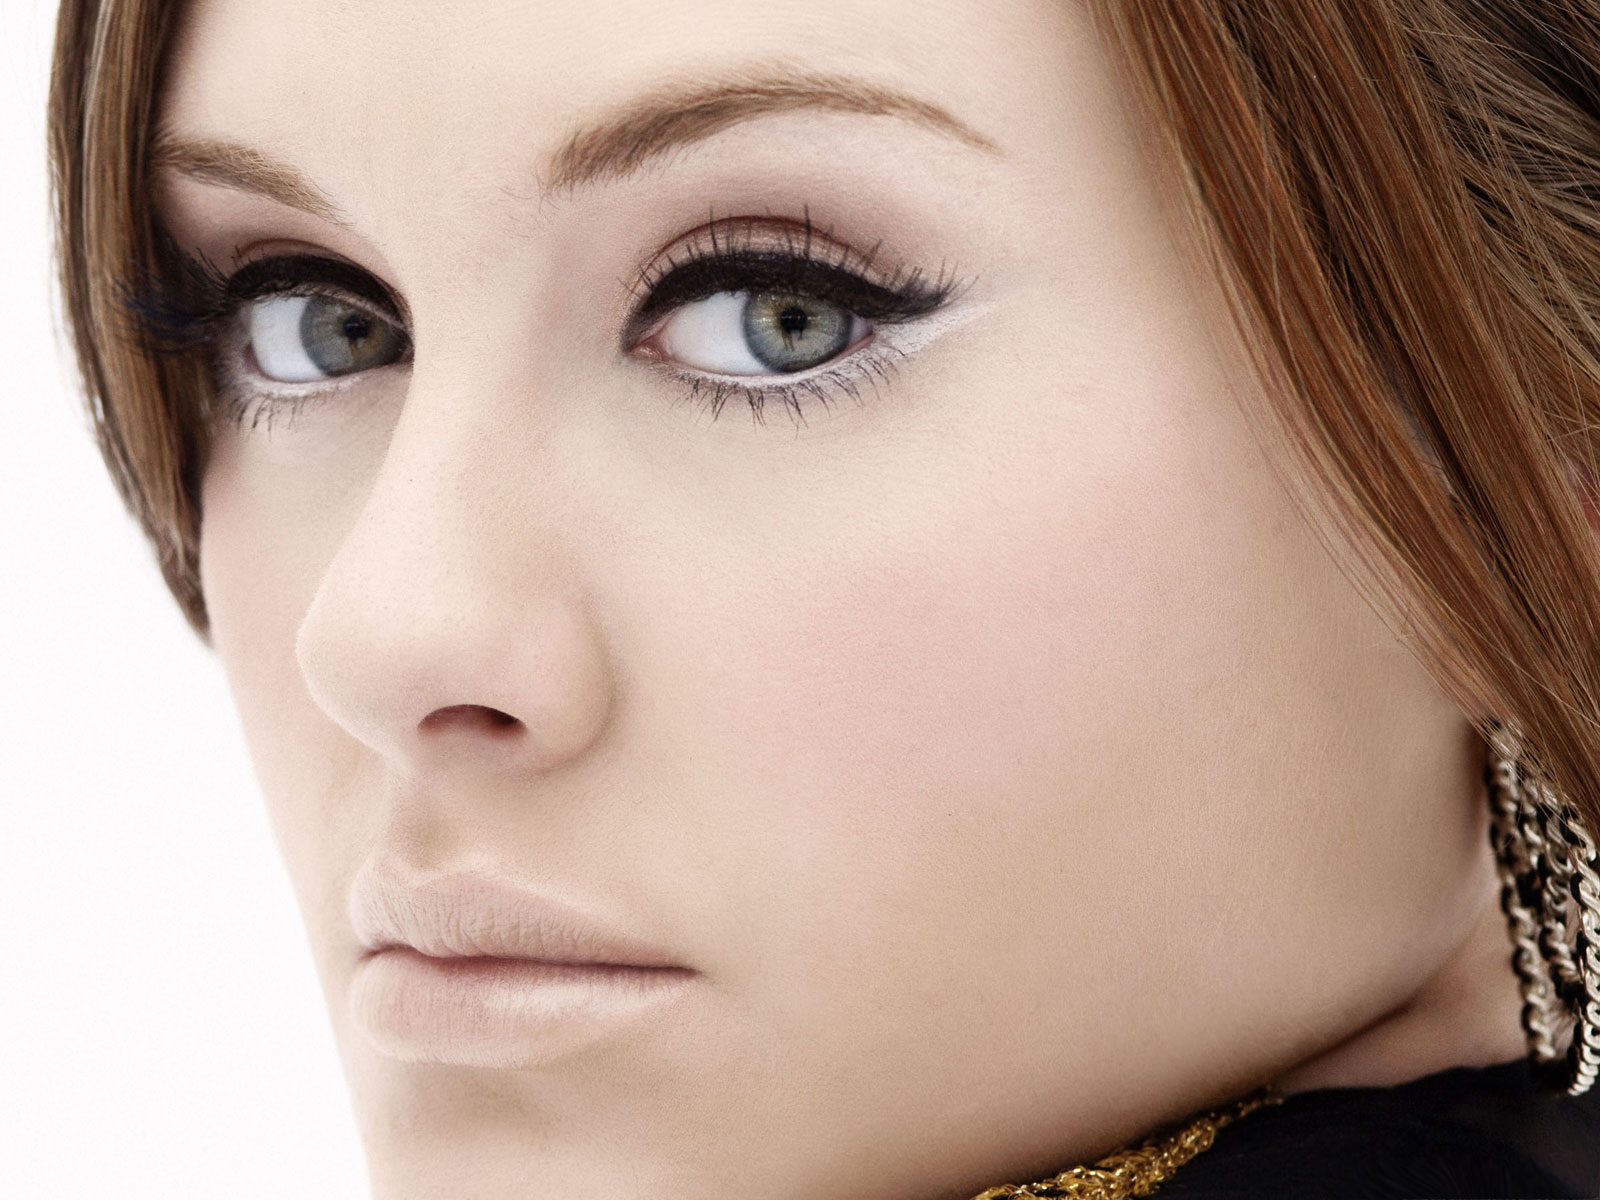 Adele-Desktop-HD-http-www-wallarena-com-adele-desktop-hd-html-wallpaper-wp6001899